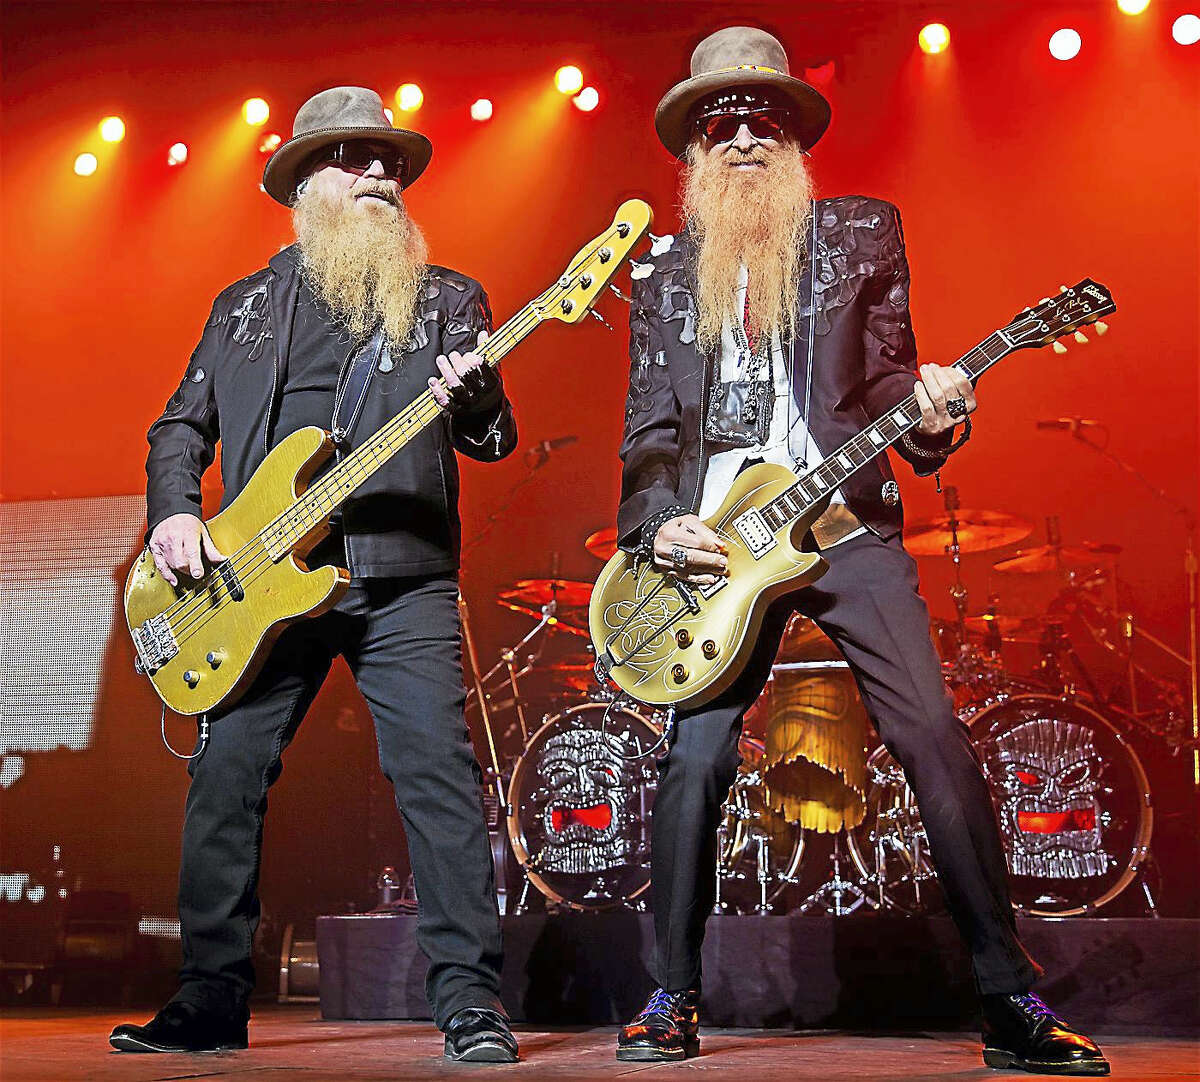 Contributed photoZZ Top will perform in concert at the Foxwoods Resort Casino in Mashantucket on Friday, Sept. 2.